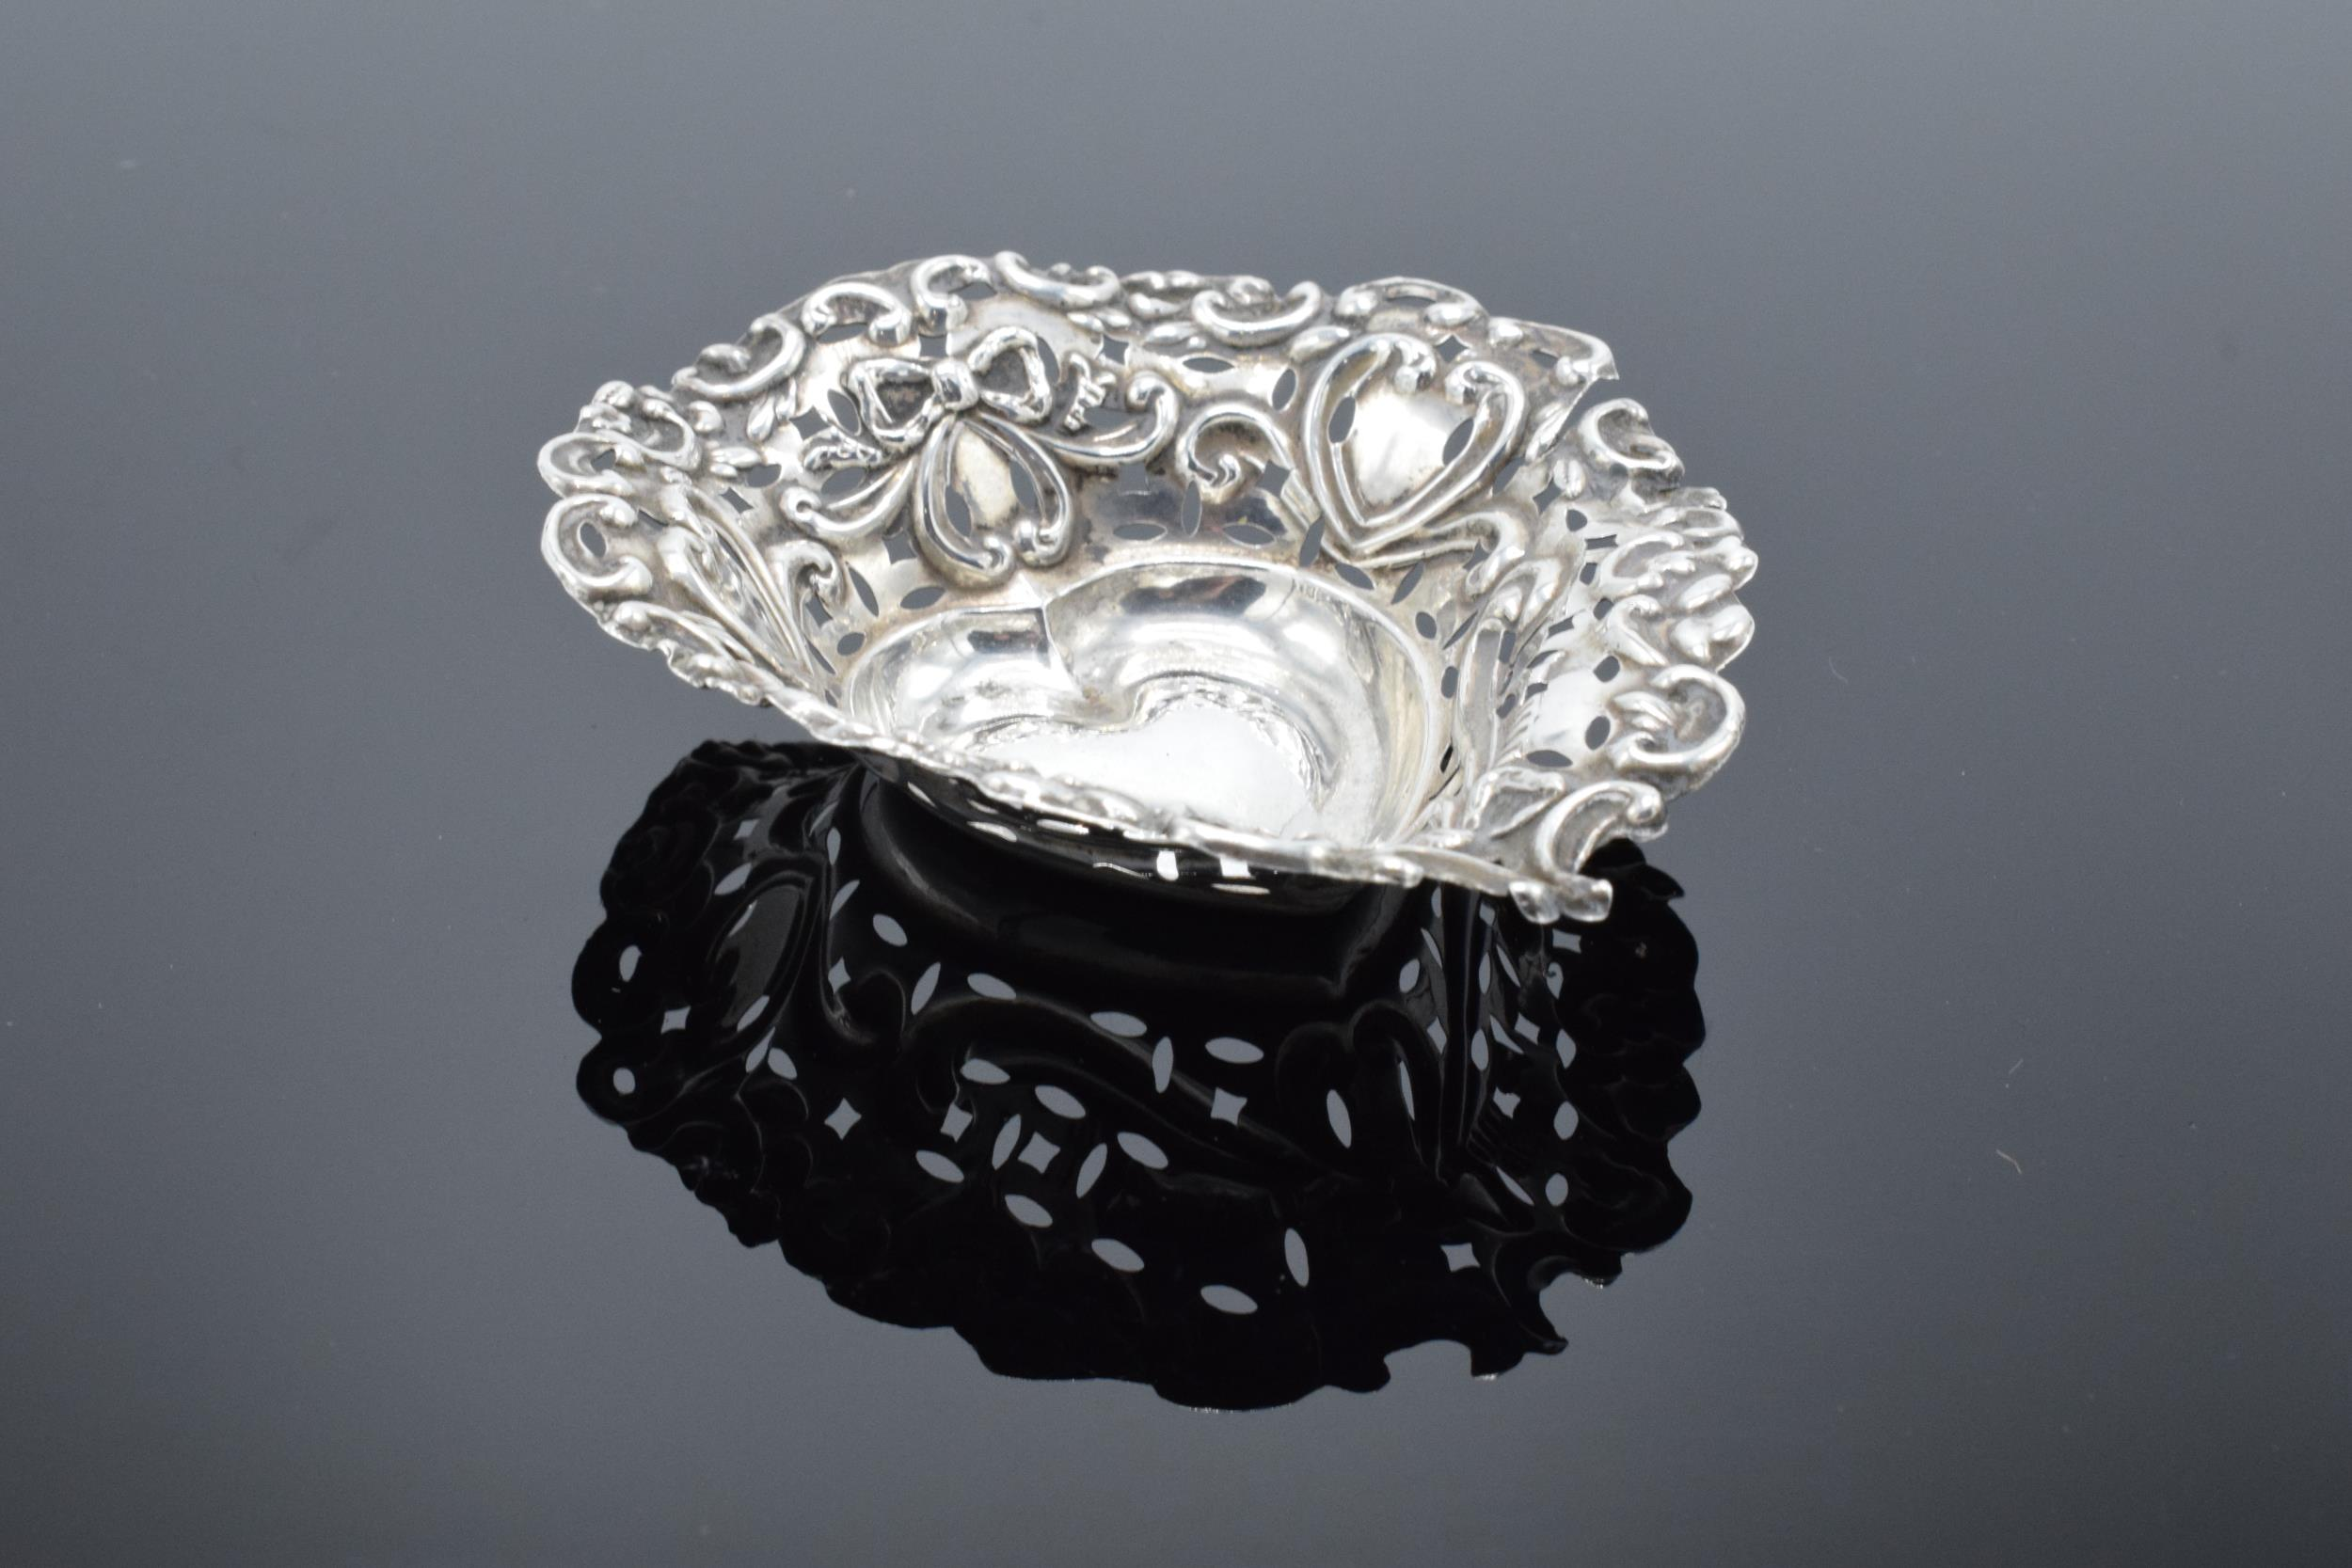 An ornate silver sweet dish/ small tray Birmingham 1900. 9cm by 7cm. 11.9 grams. - Image 2 of 6